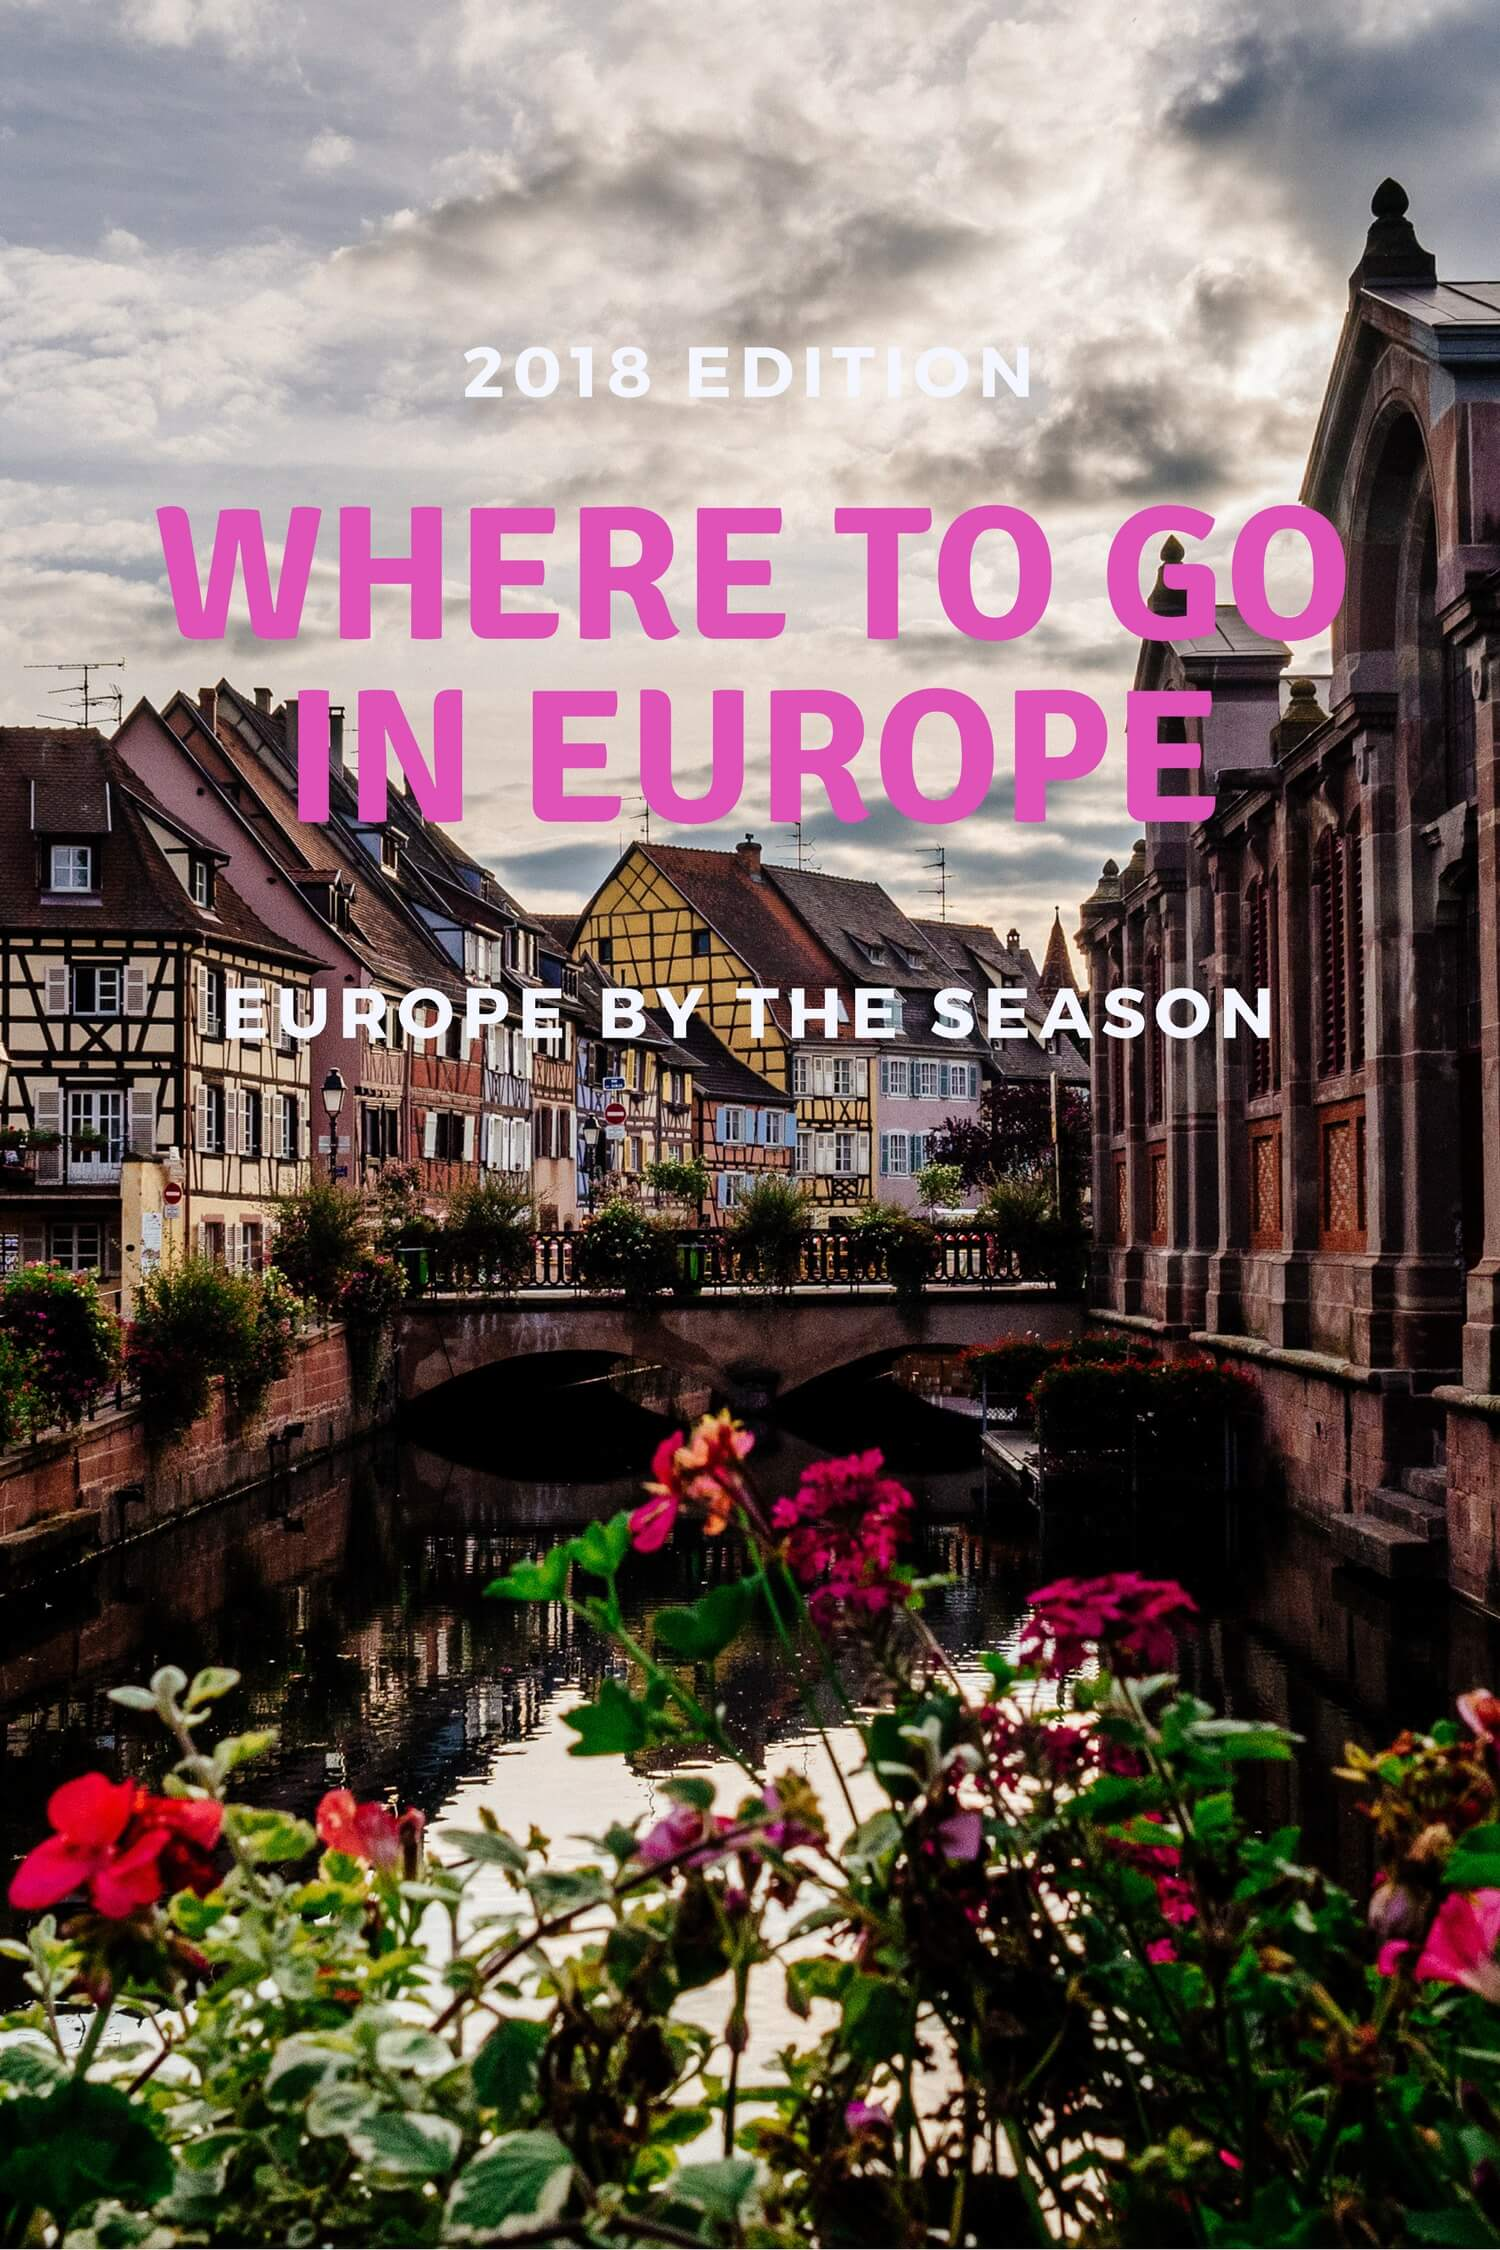 Where to Go in Europe in 2018 - Rear View Mirror